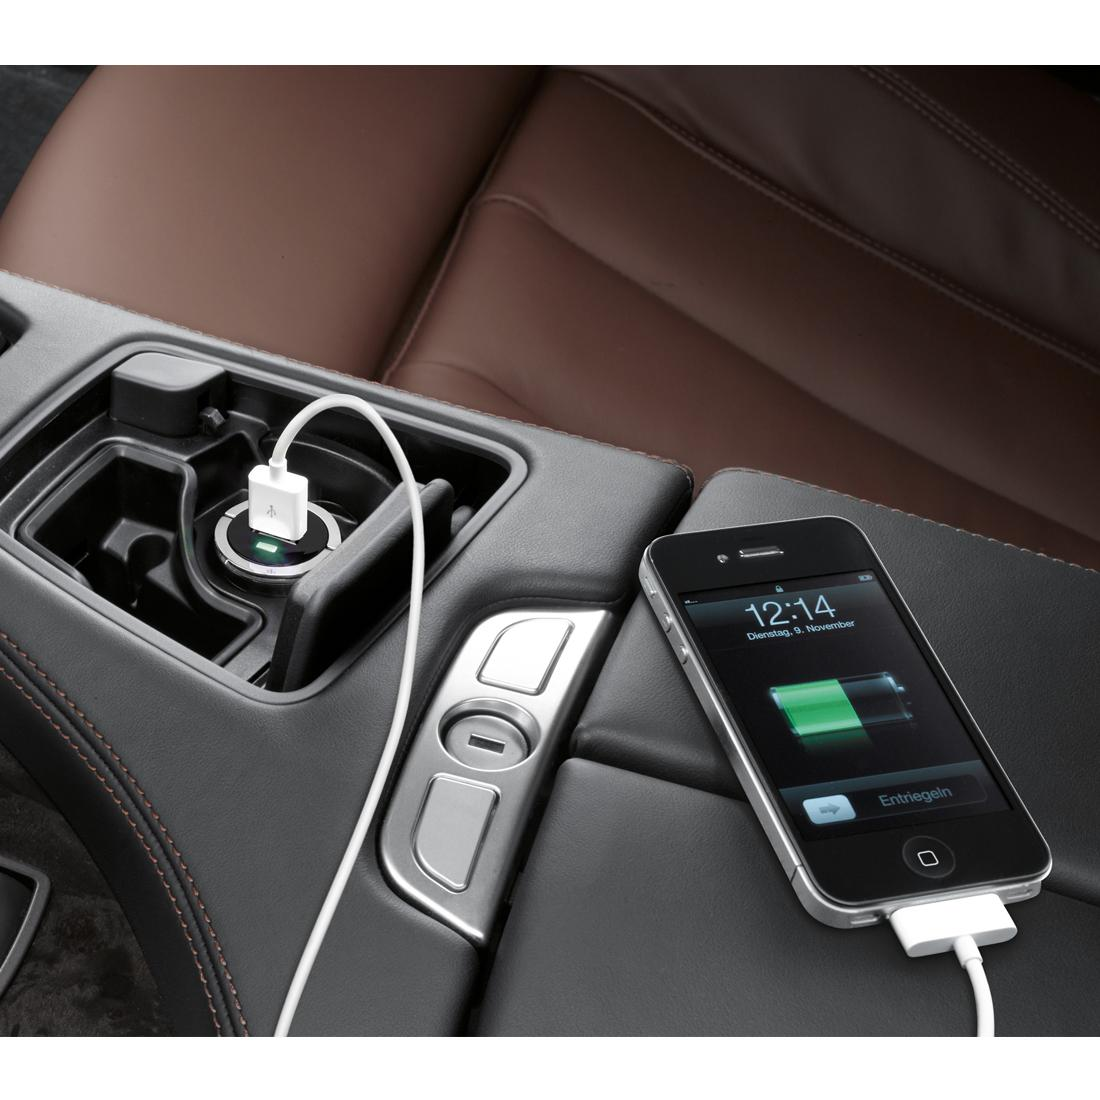 BMW USB charger for Type A